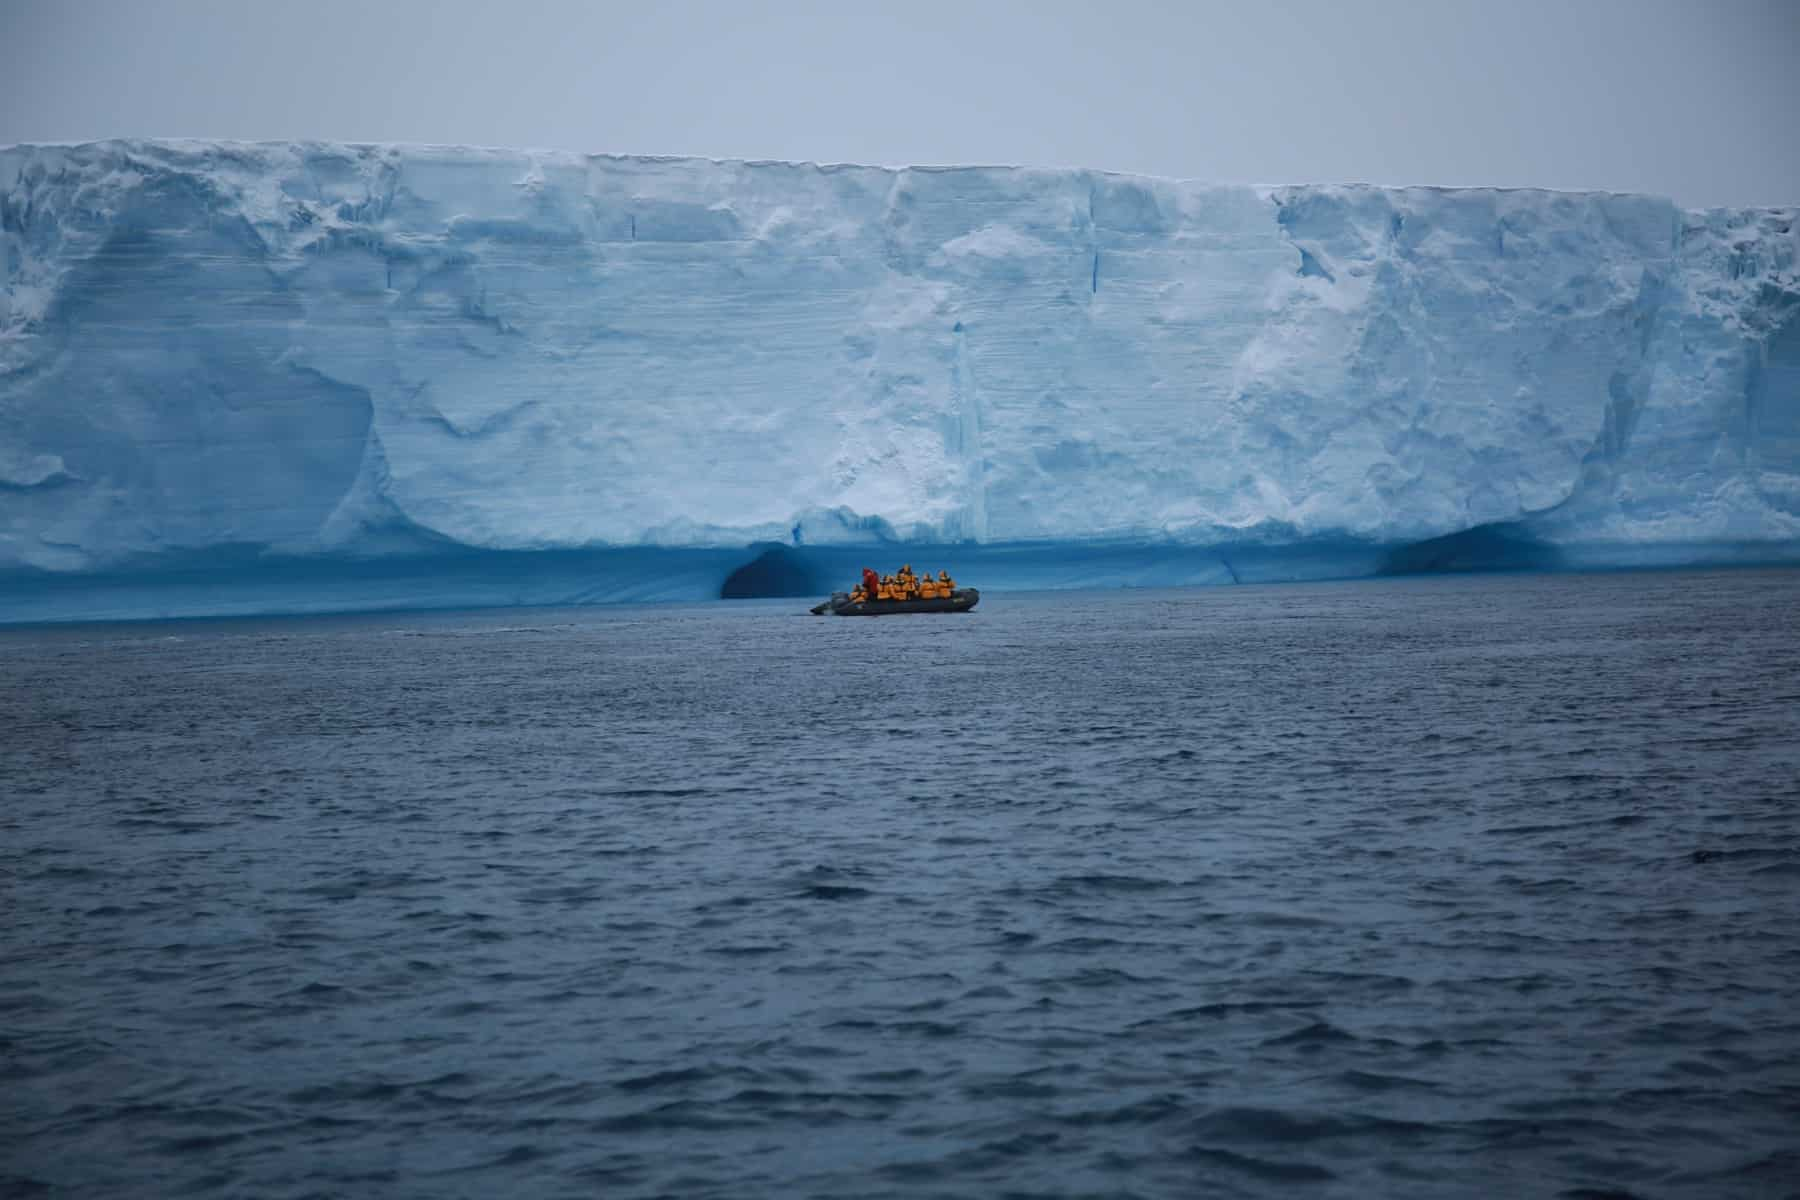 Our Zodiac vs. Iceberg/Shelf